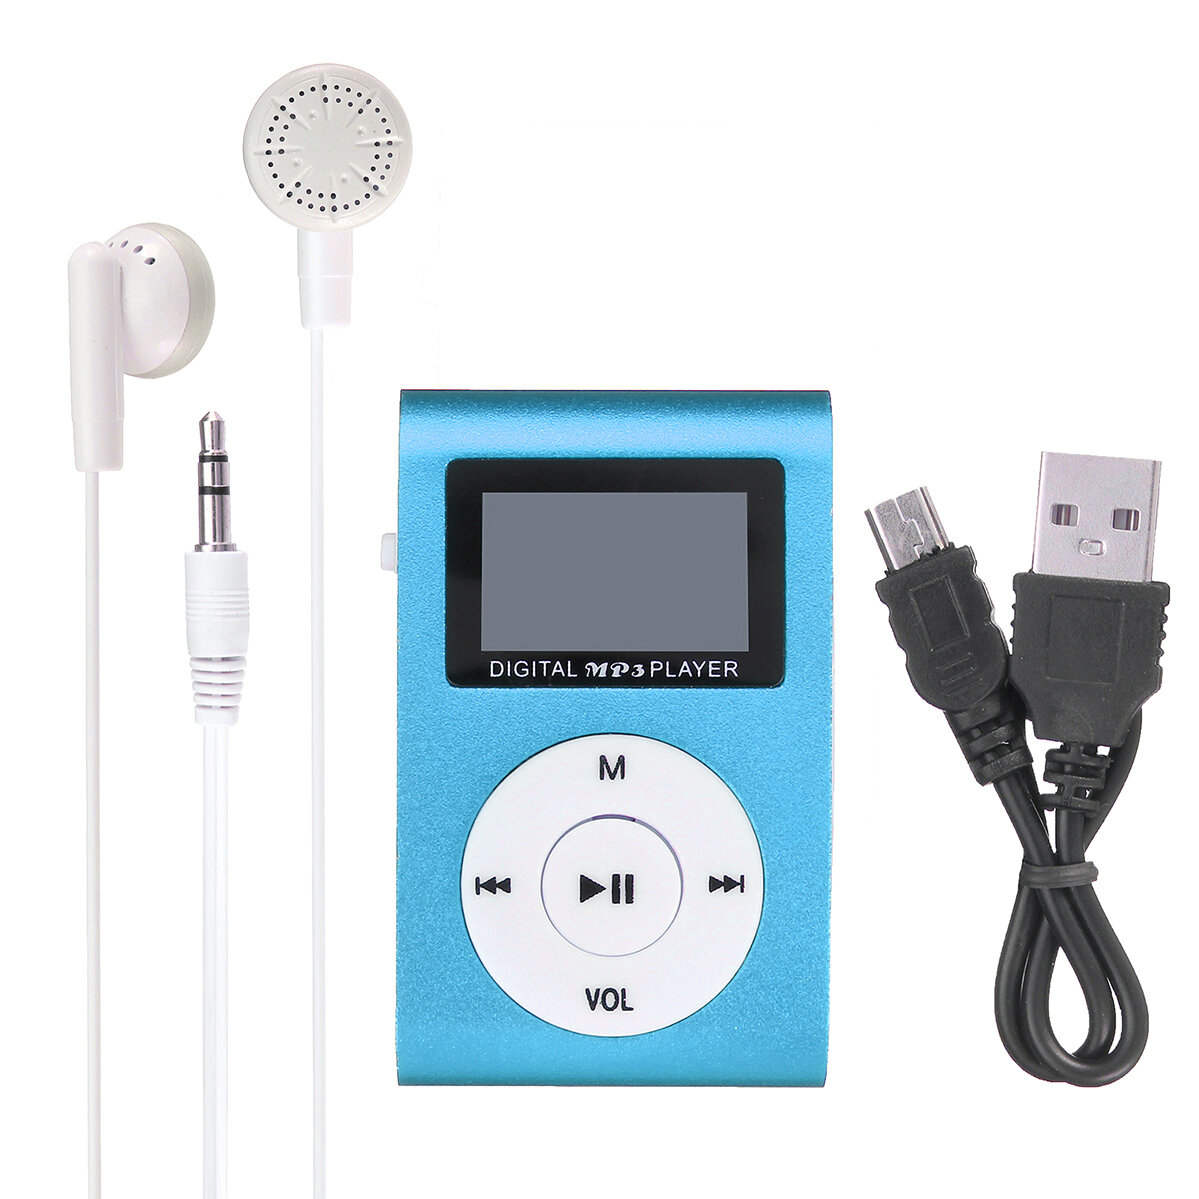 MP3 Player USB Clip 32GB Micro SD Card Slot with Earphone